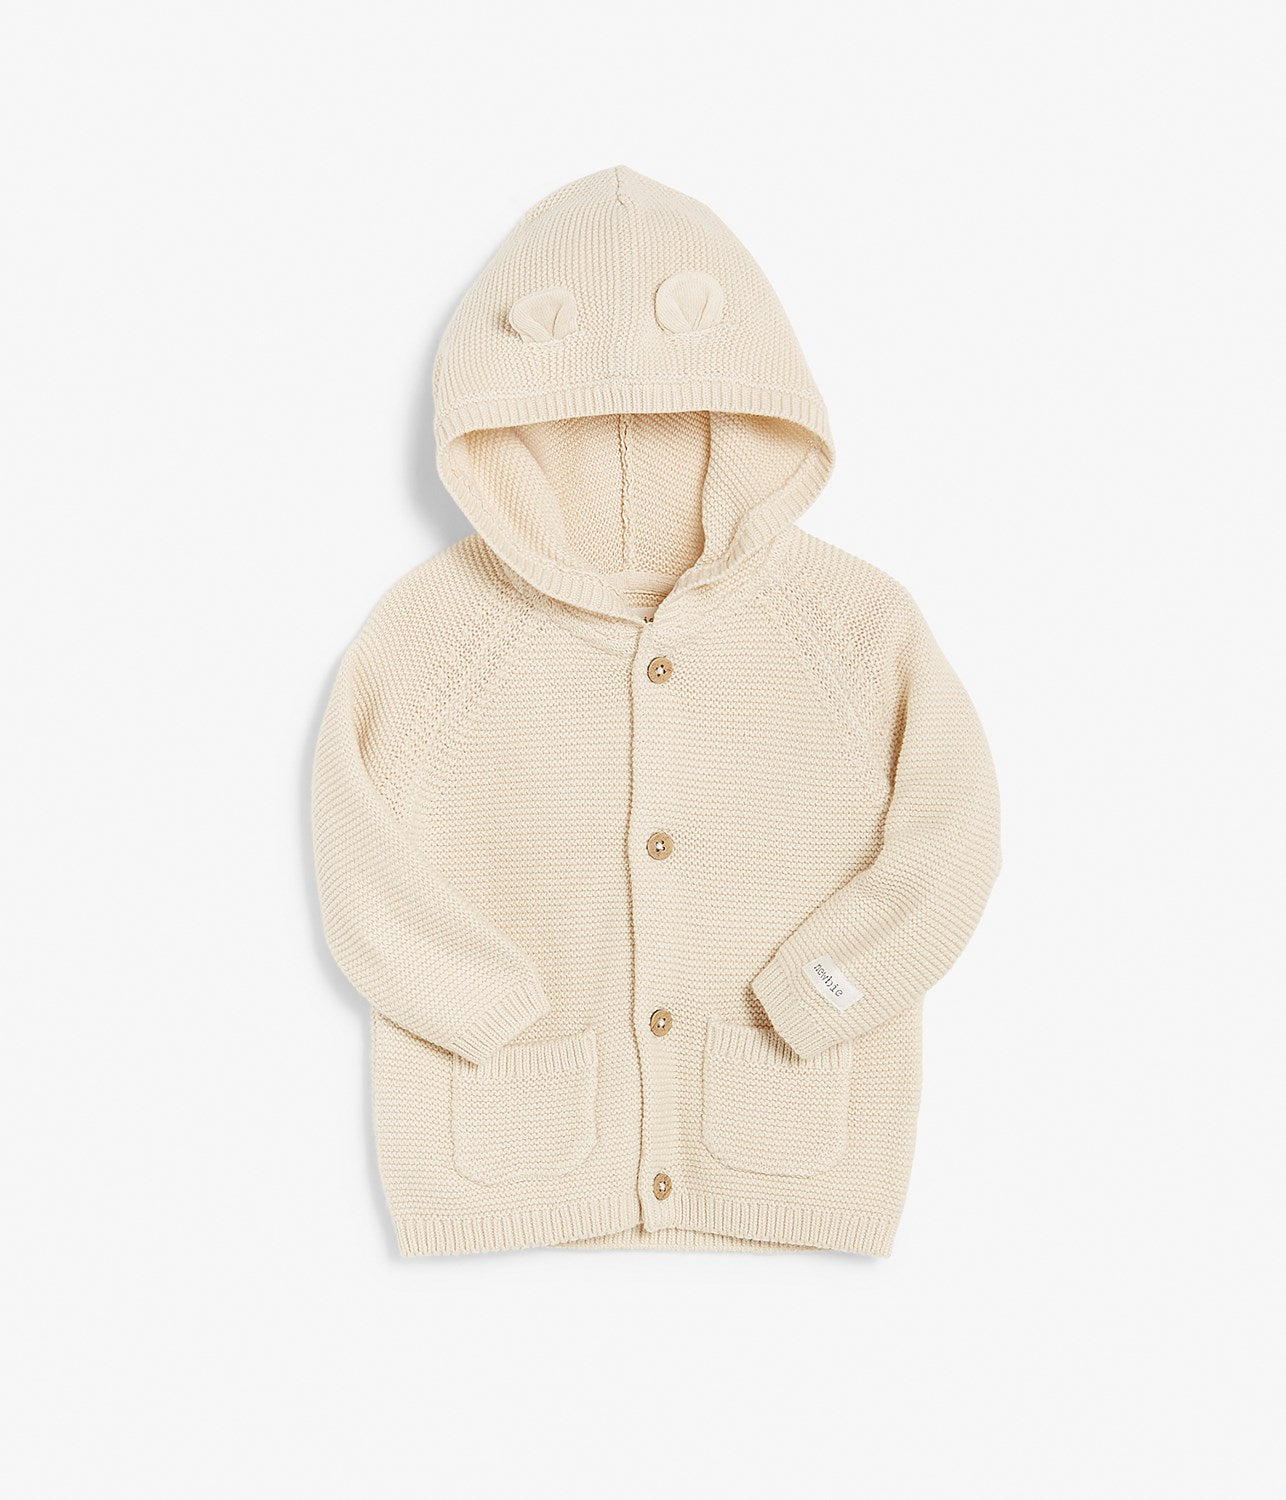 Baby cream knitted cardigan with hood & ears